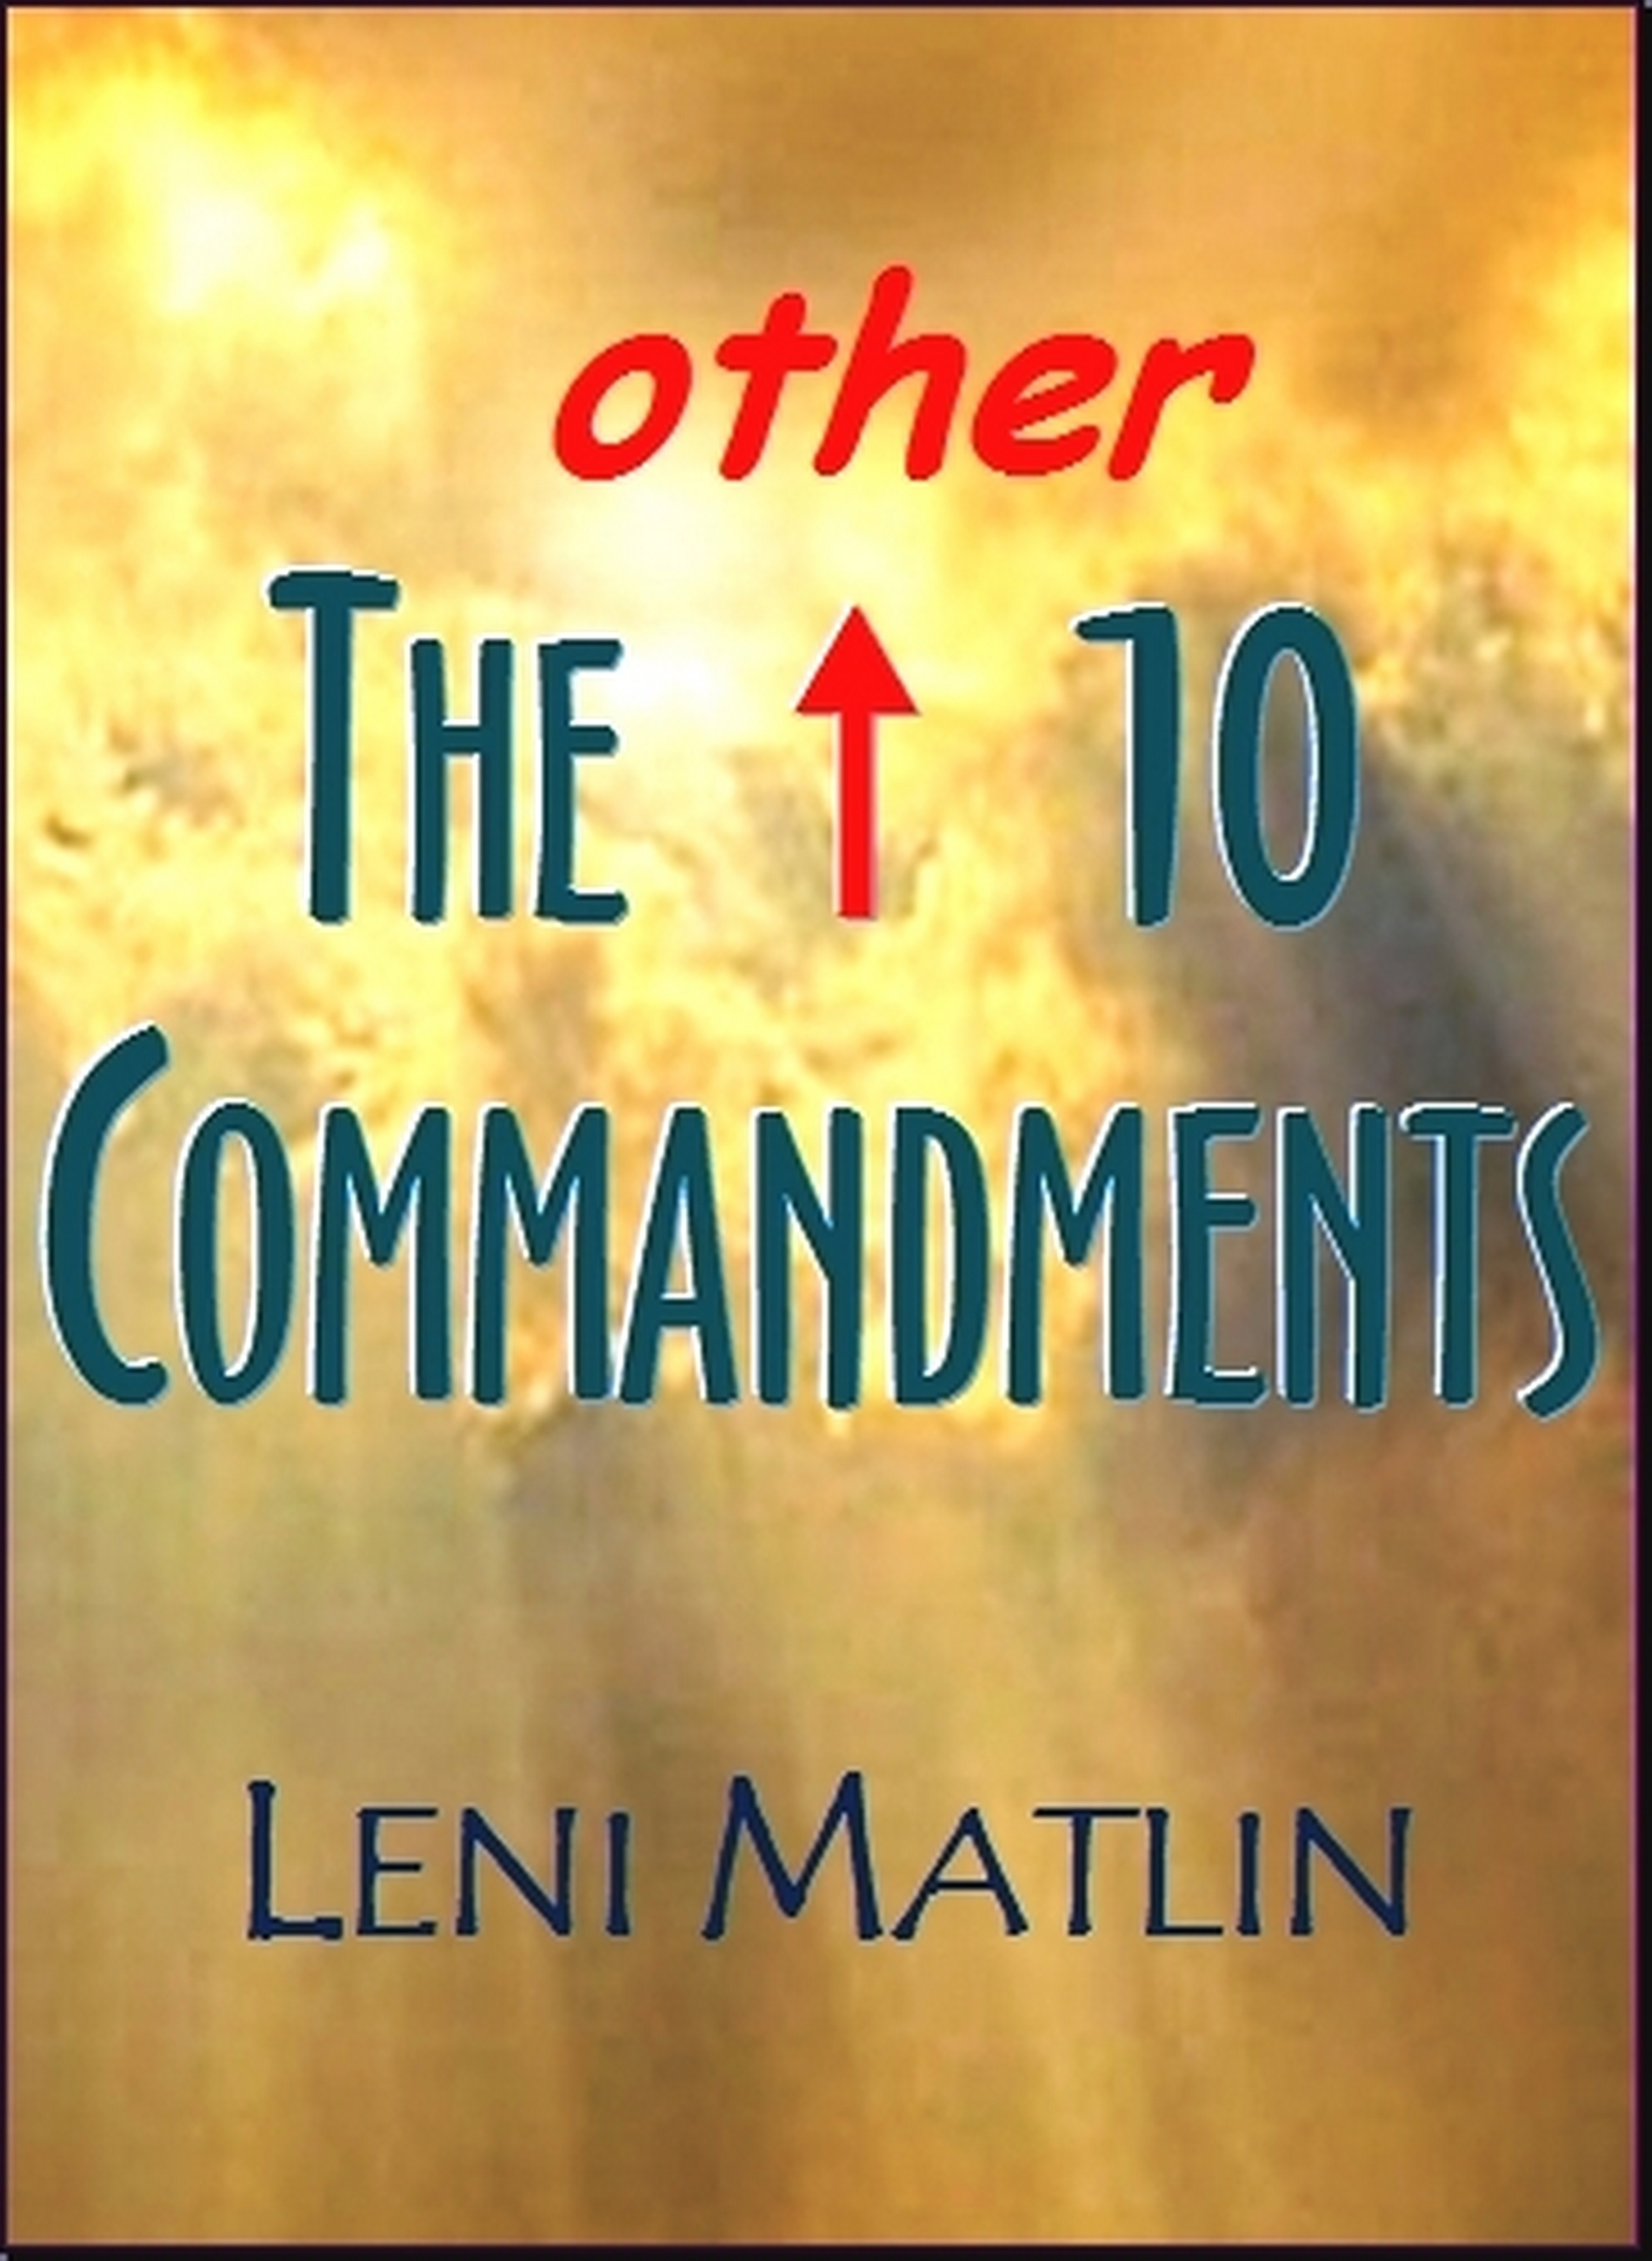 The Other 10 Commandments